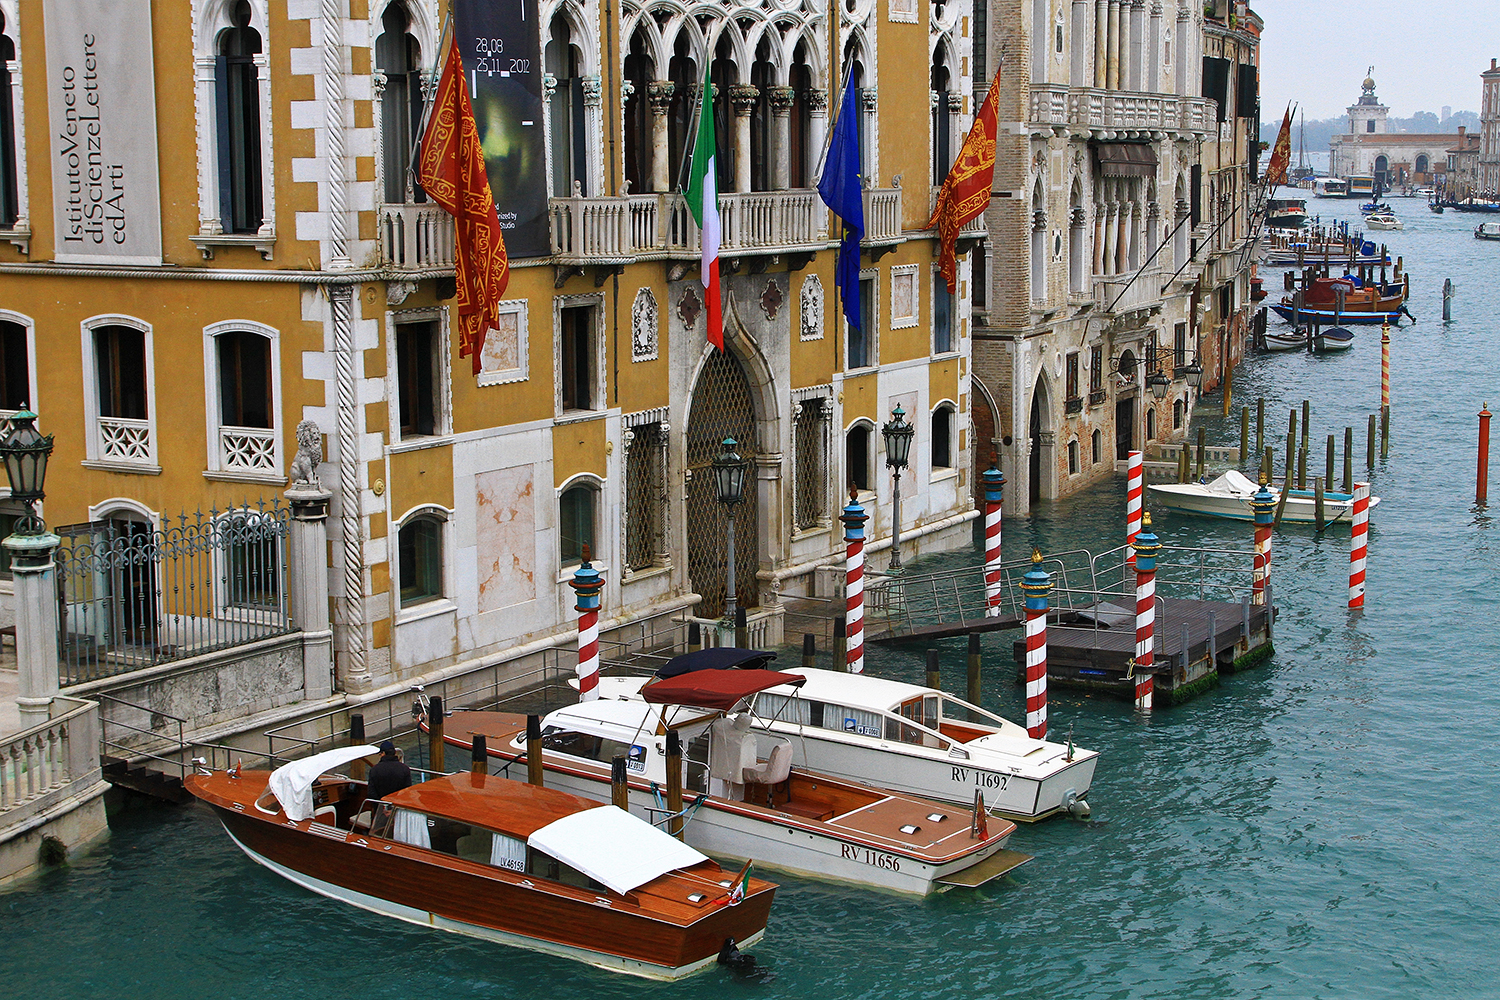 Water taxis along the canals in Venice, Italy.